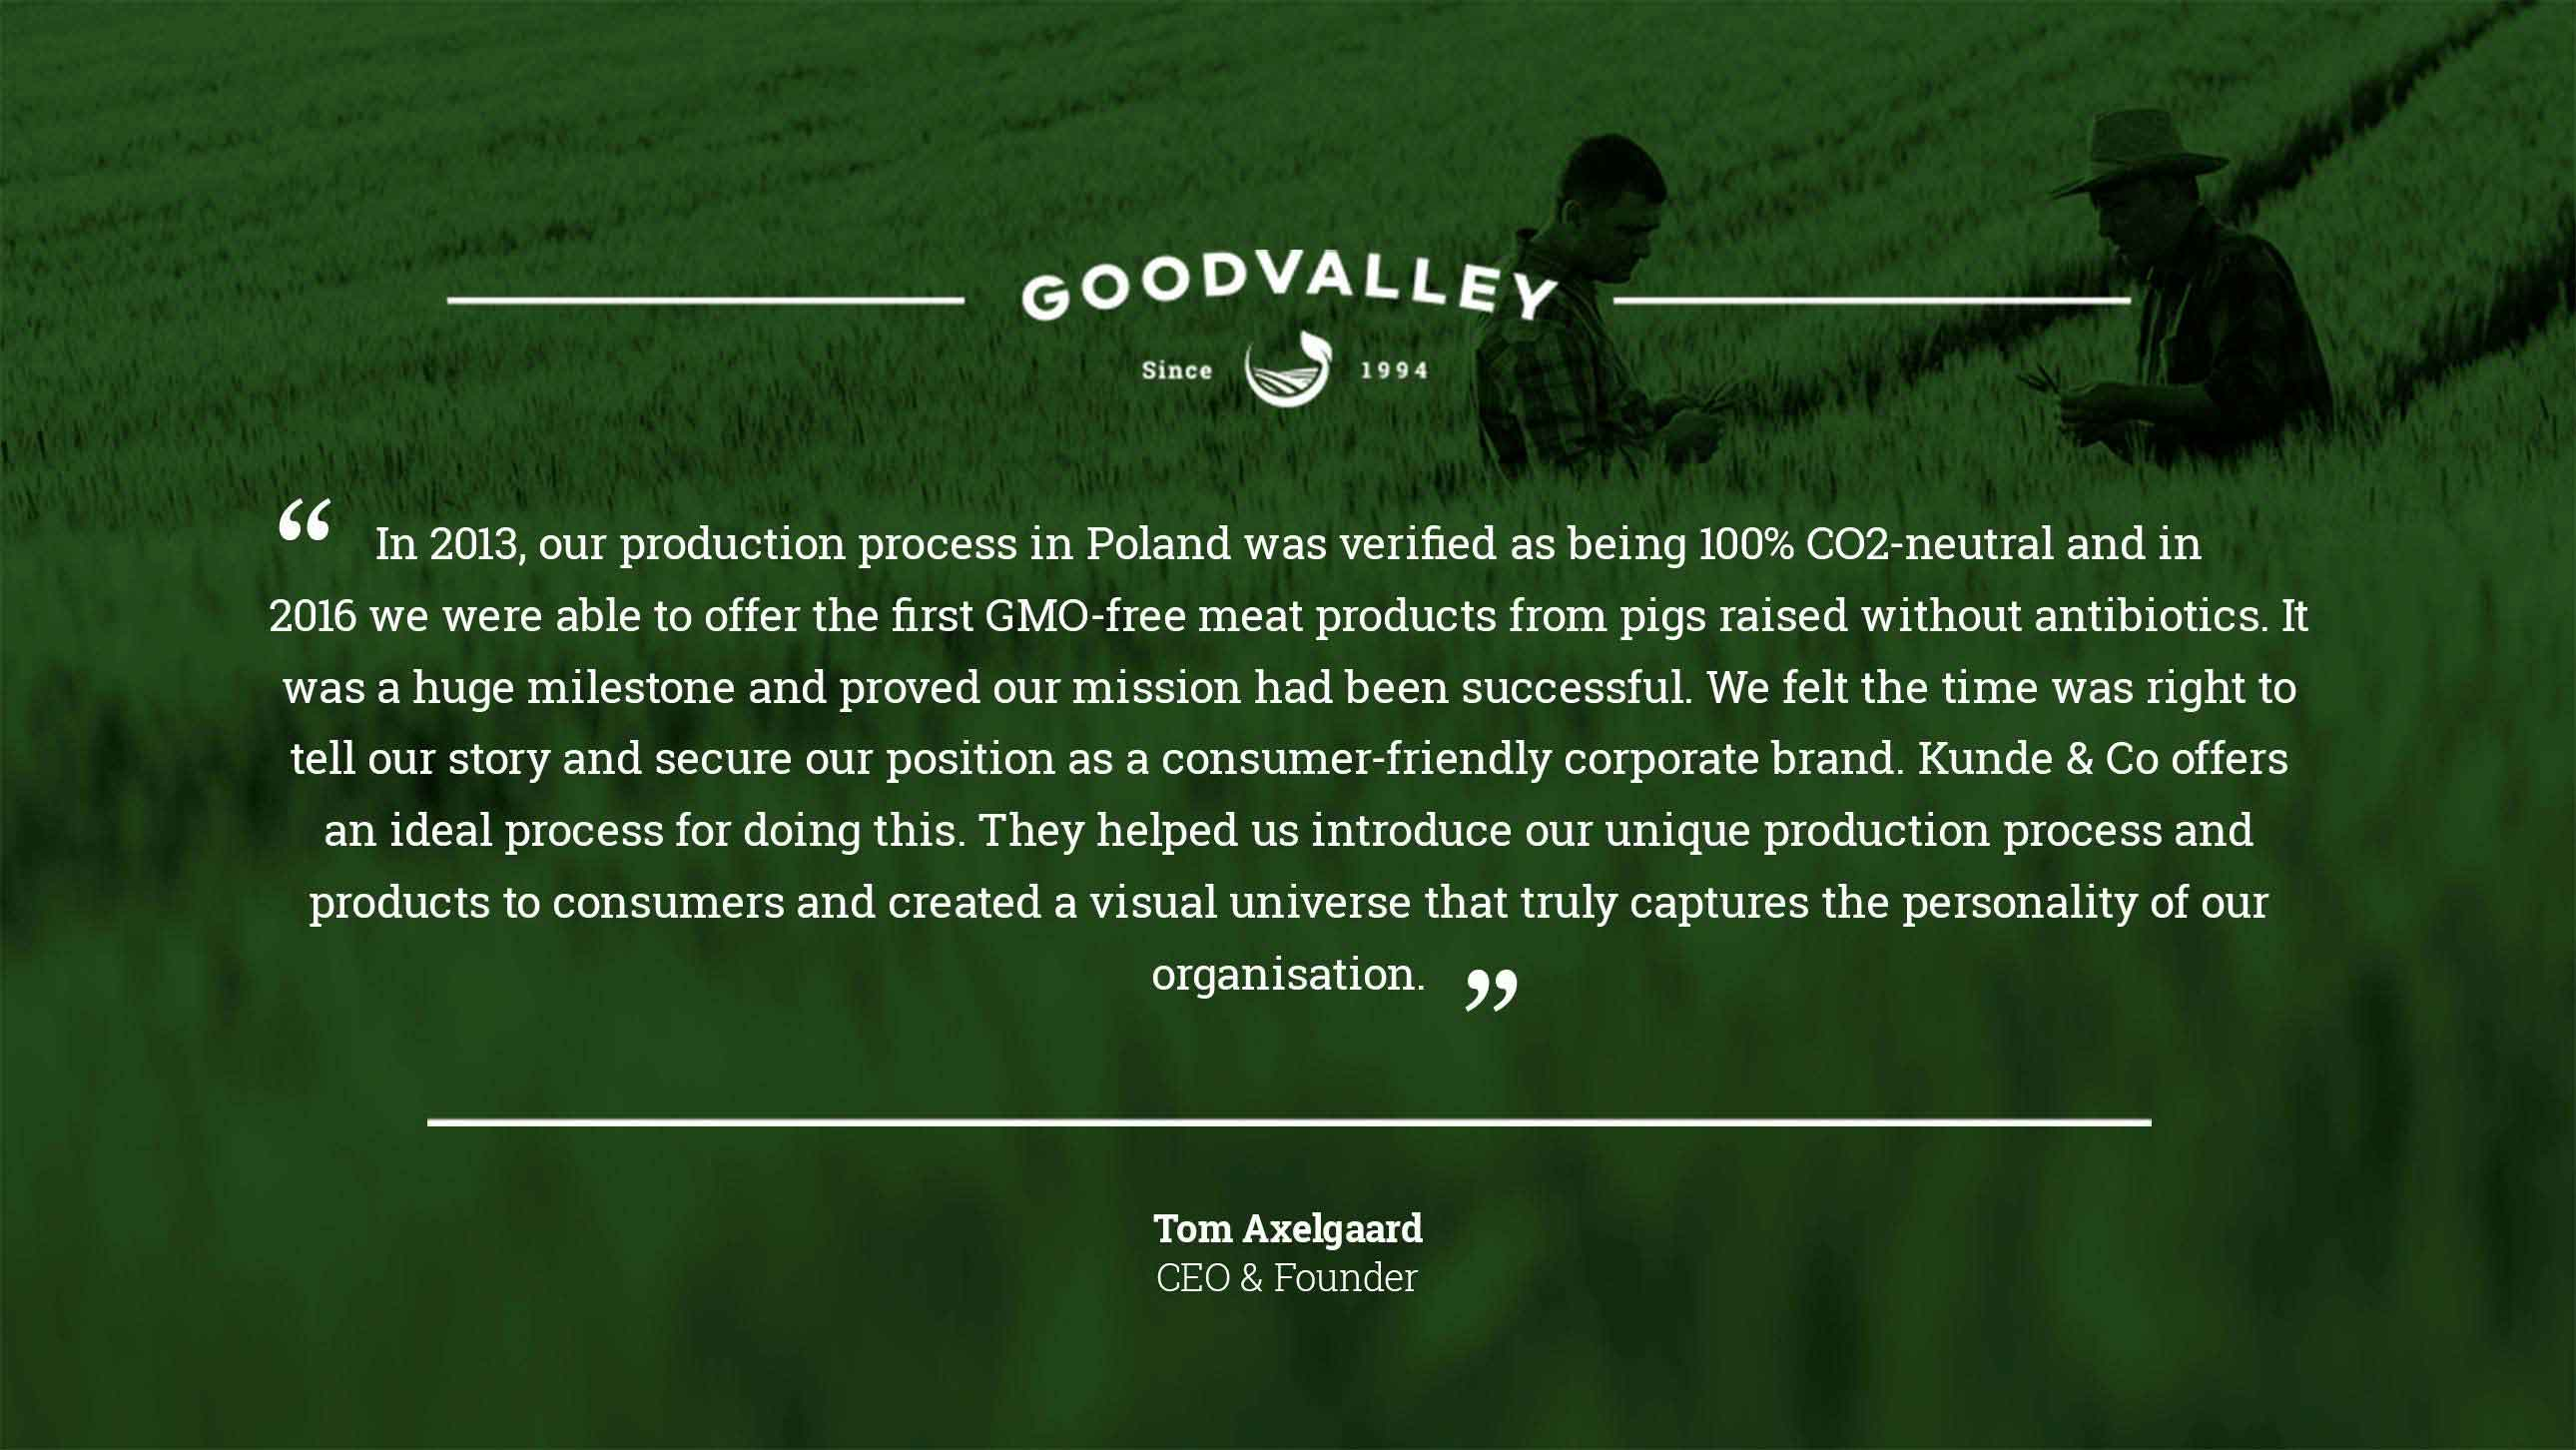 08-goodvalley-quote.jpg (1)